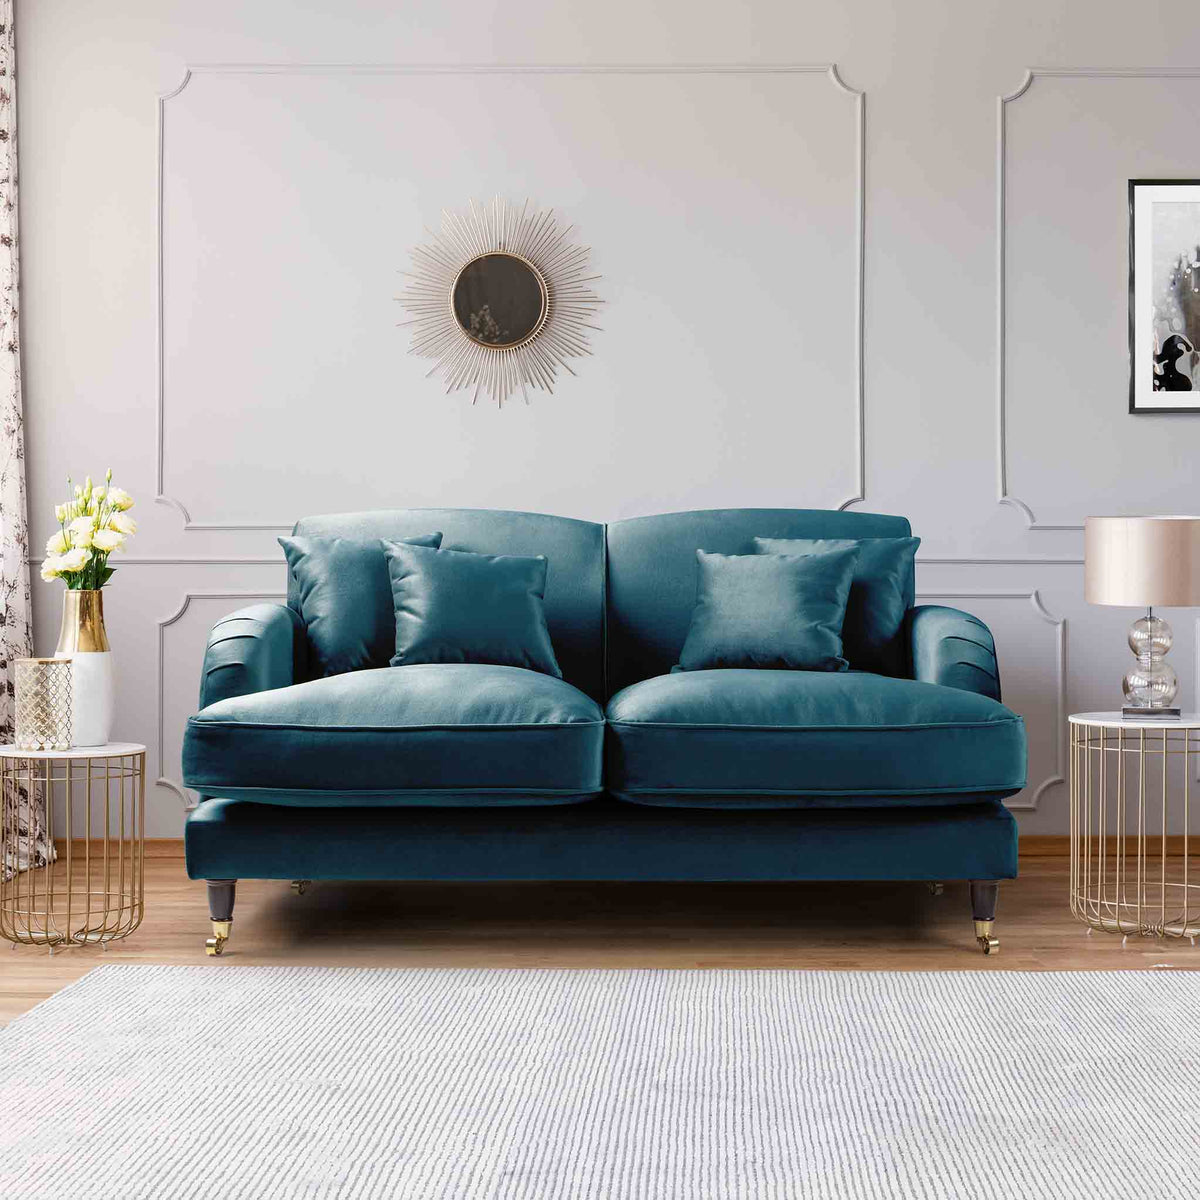 Piper Peacock Velvet 2 Seater Sofa lifestyle image